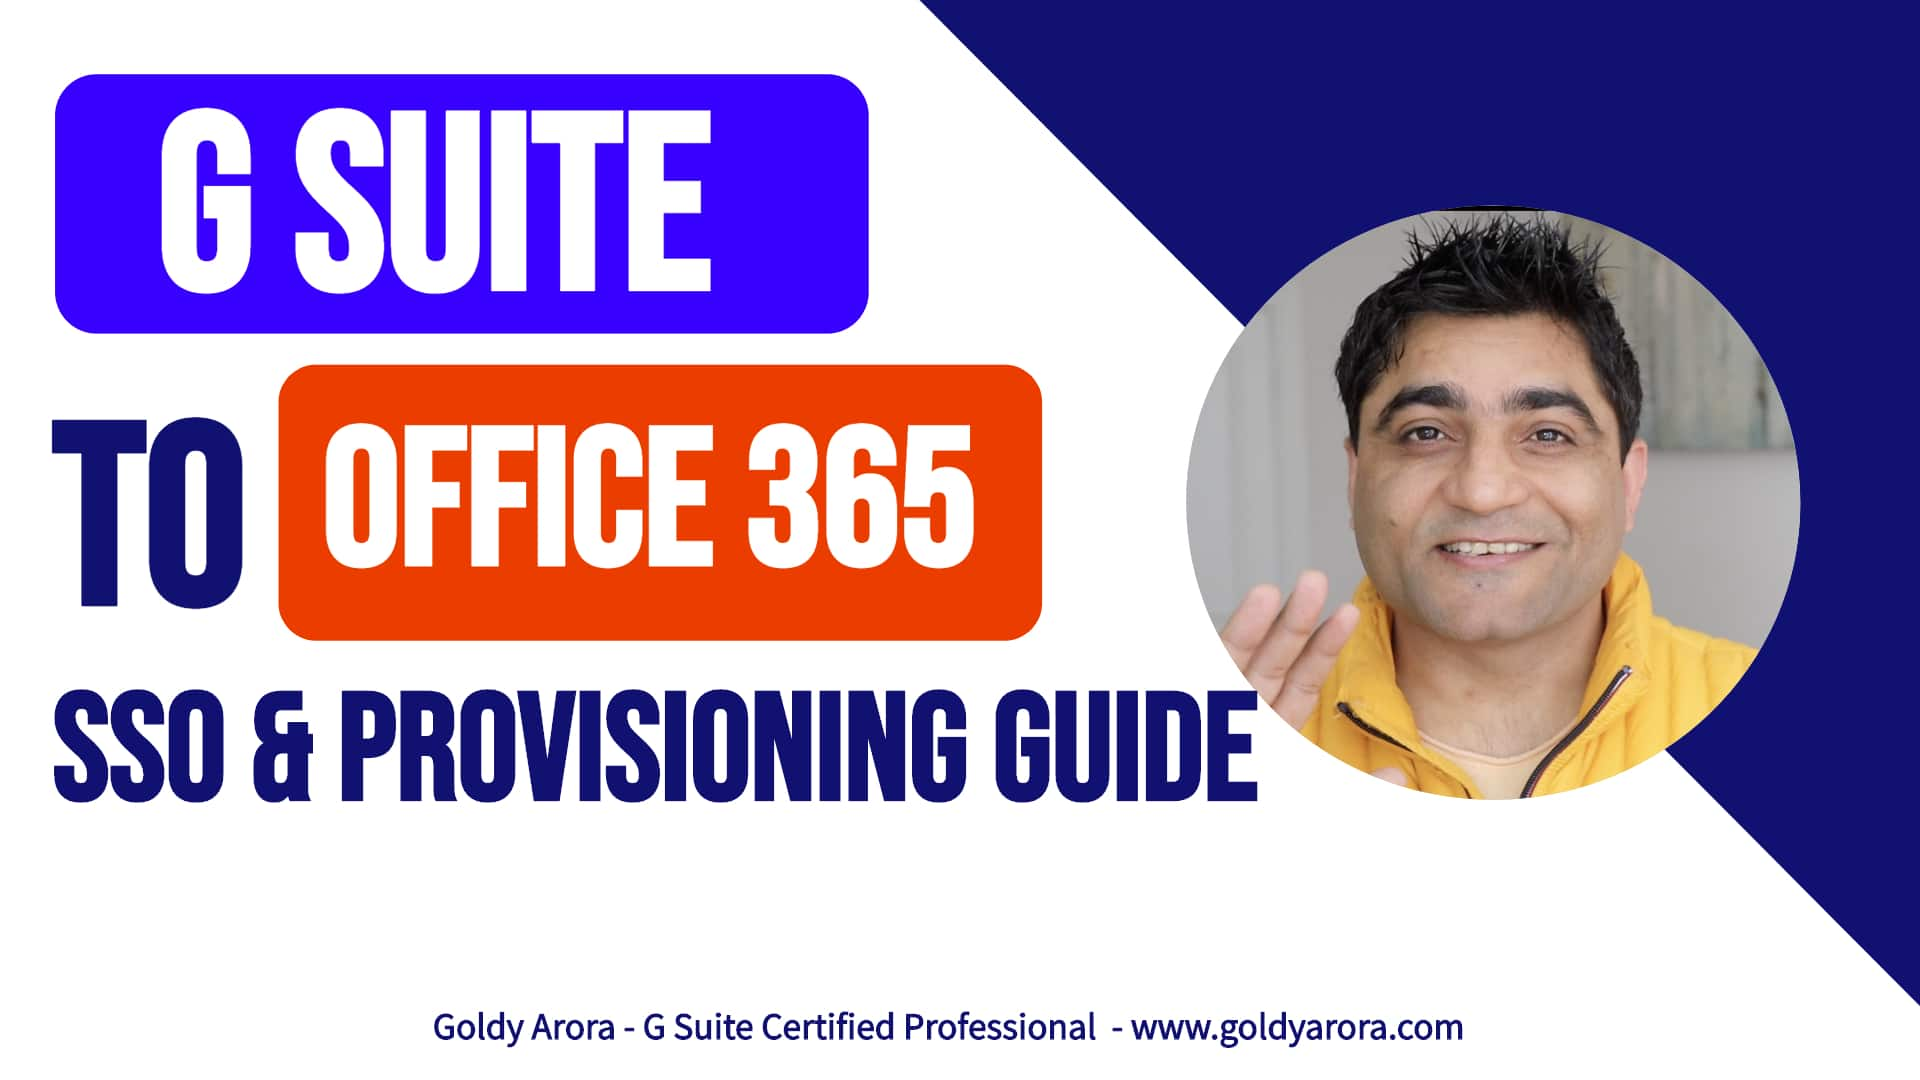 Google Workspace to Office 365 SSO & Provisioning Guide